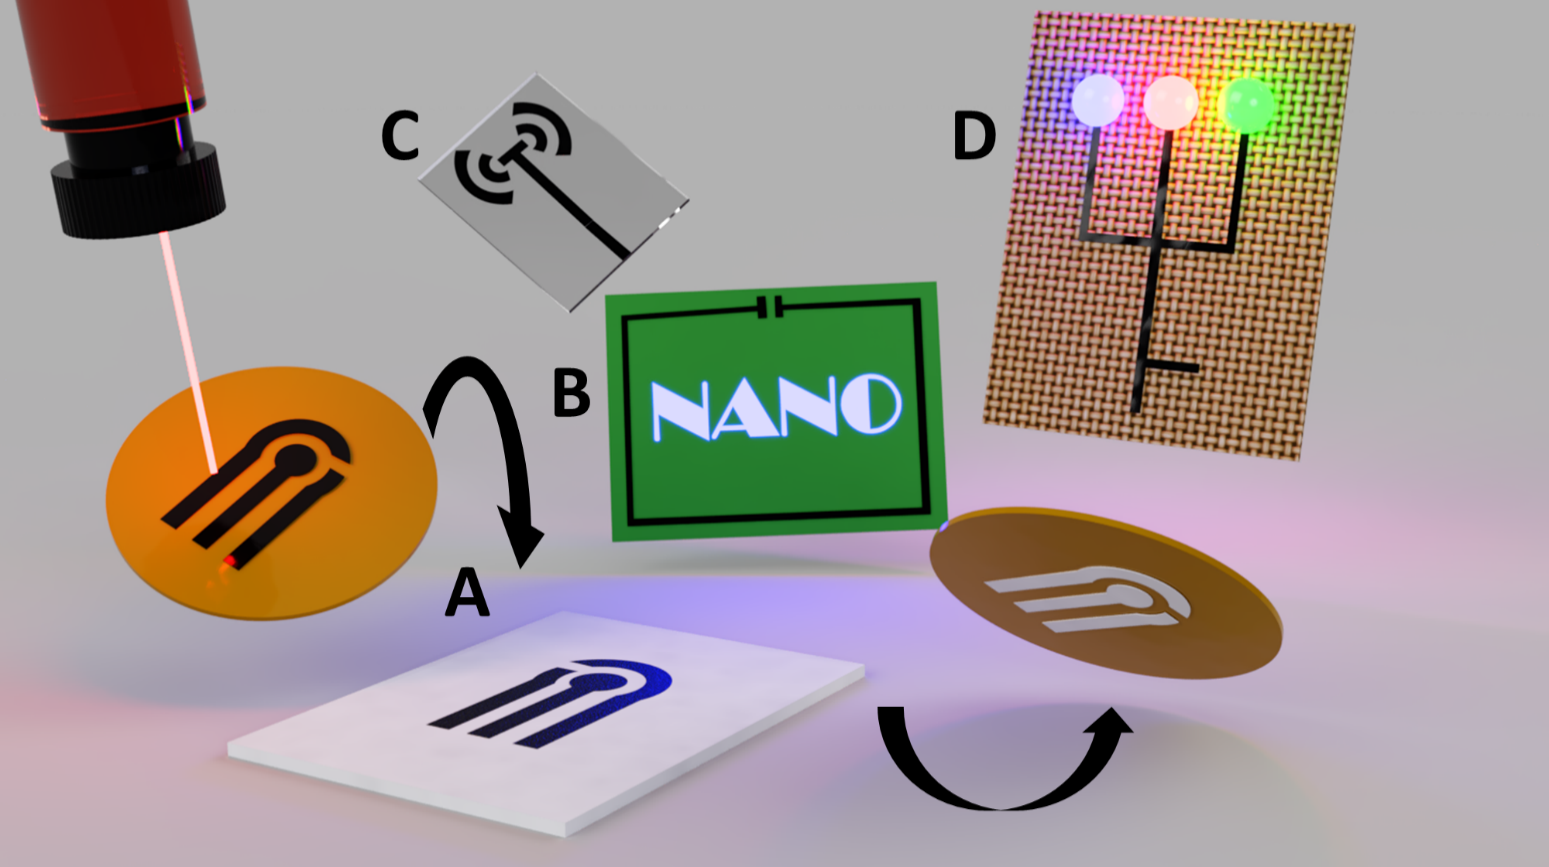 Multipurpose stamped conductive graphene nano films